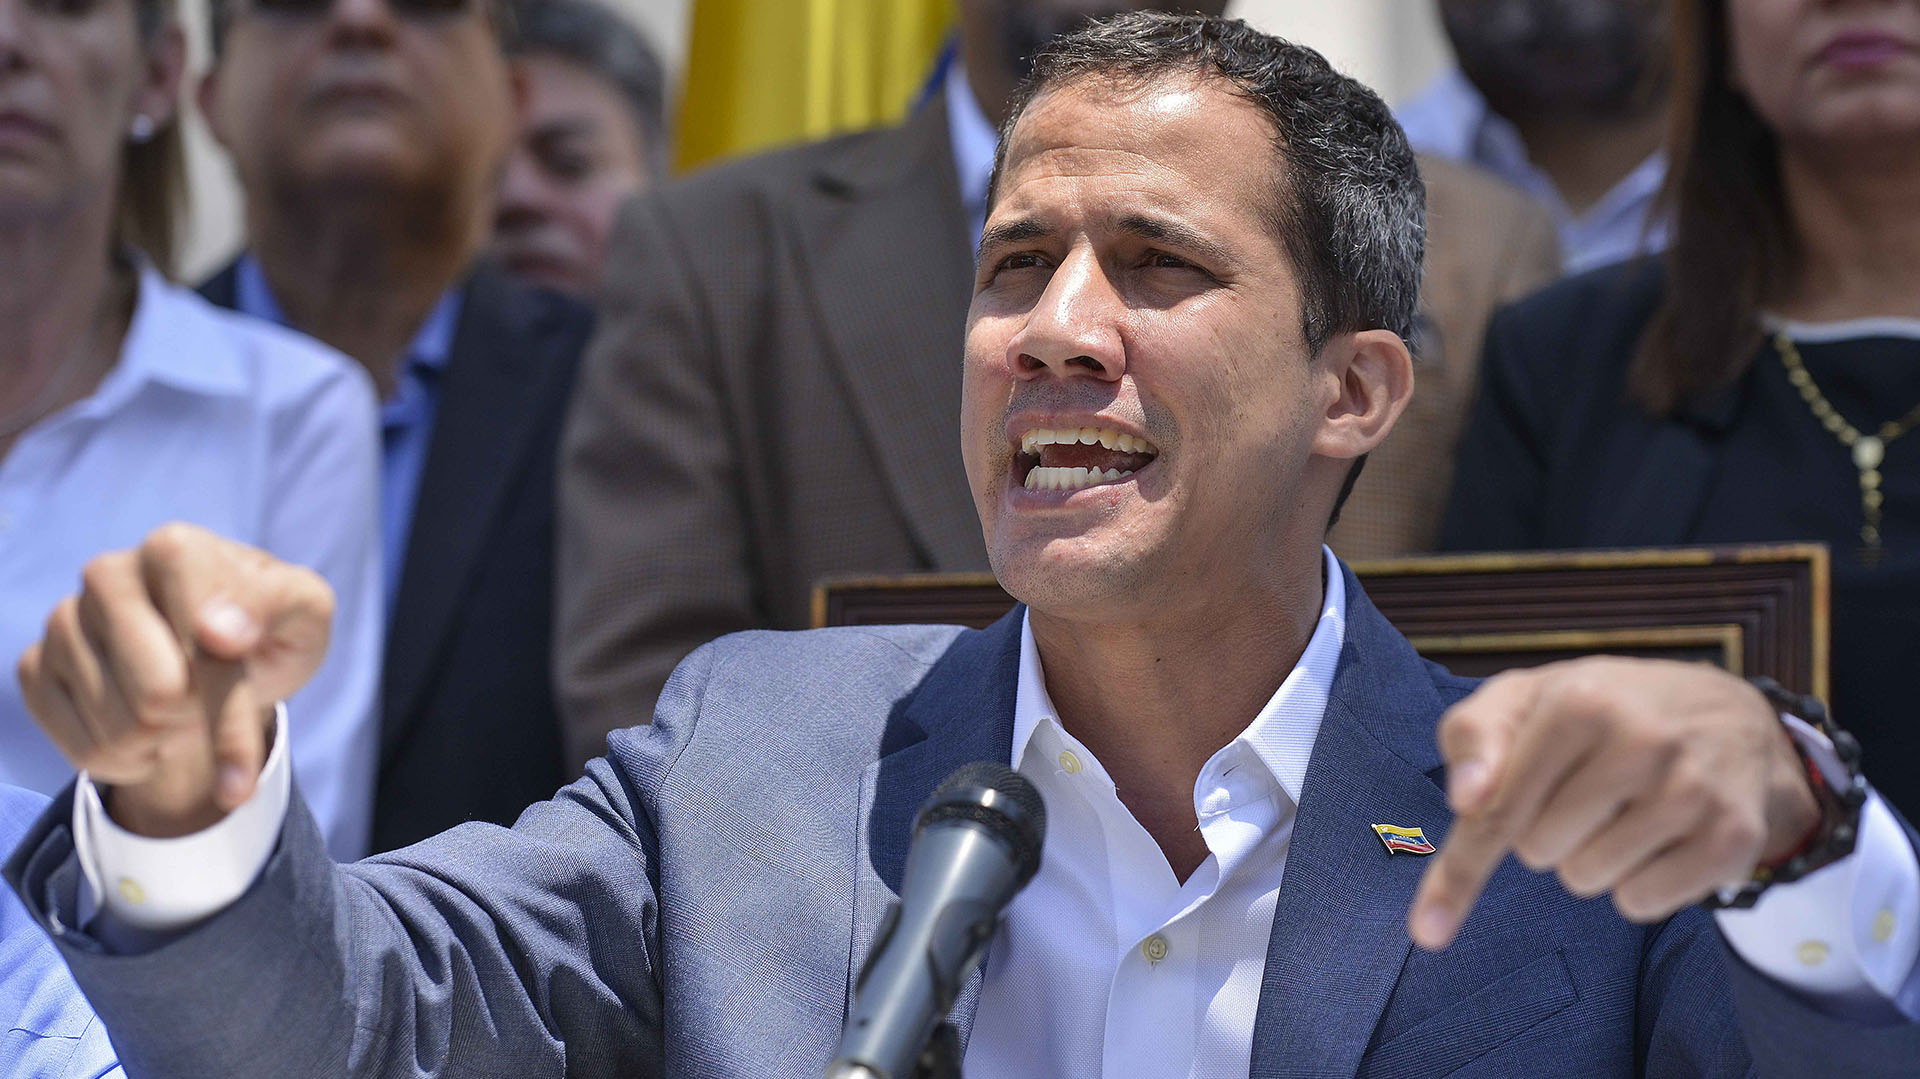 Juan Guaidó. (Photo by Matias DELACROIX / AFP)